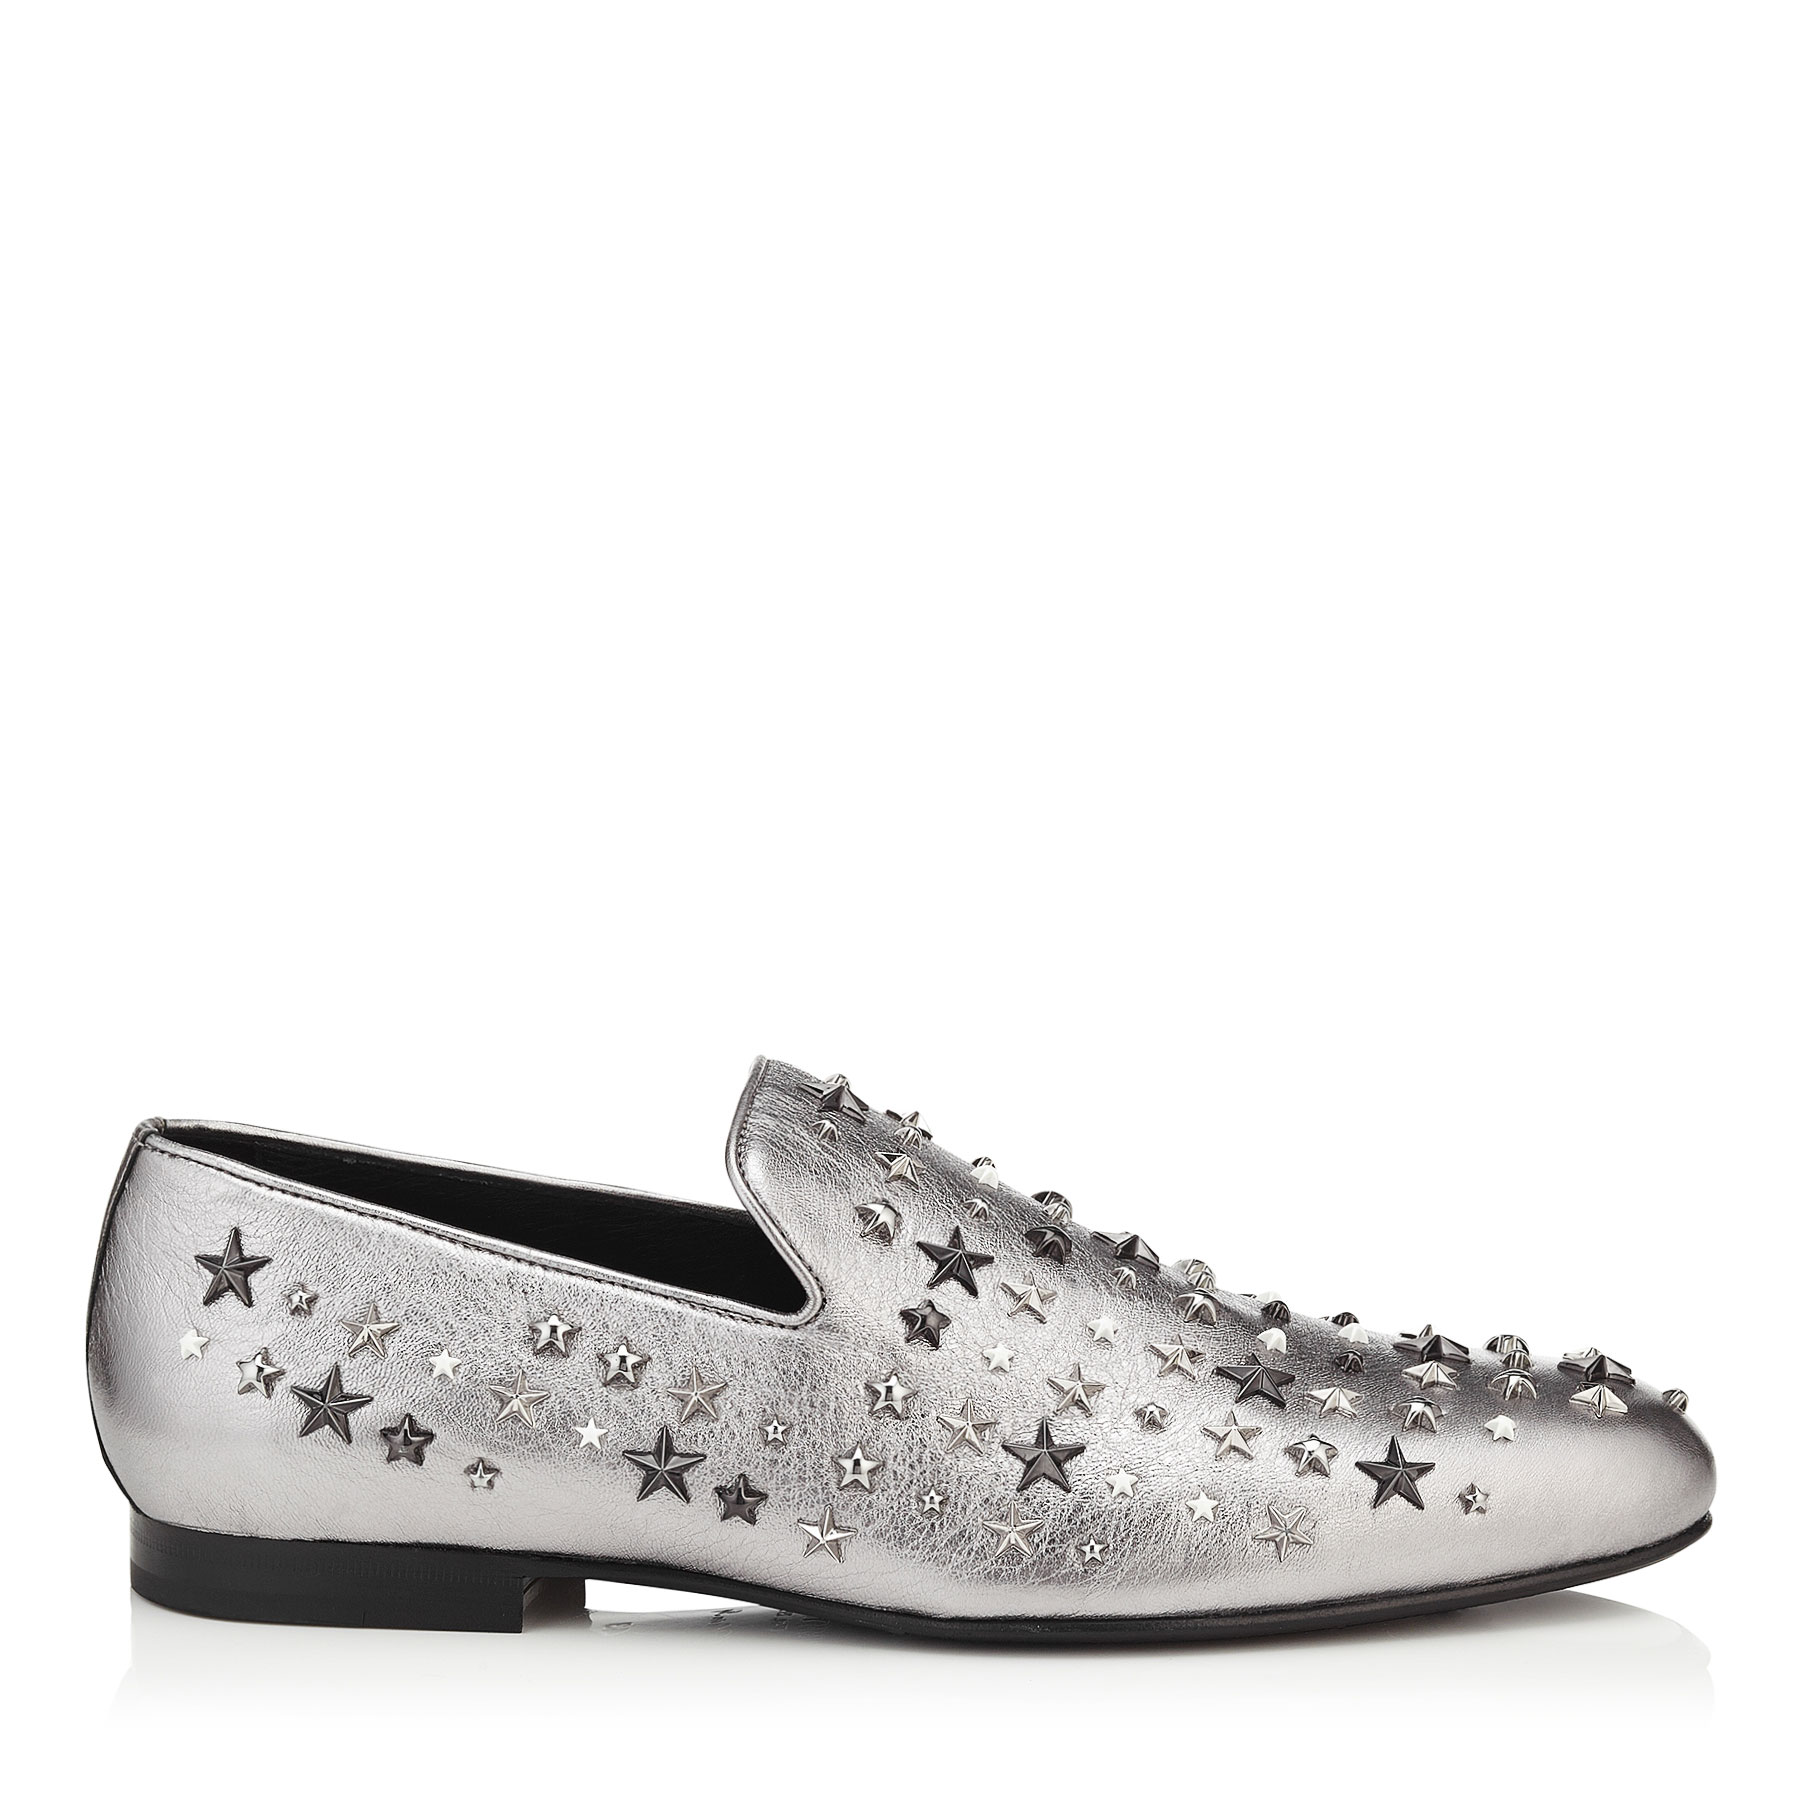 SLOANE Silver Mix Metallic Leather with Stars Slippers